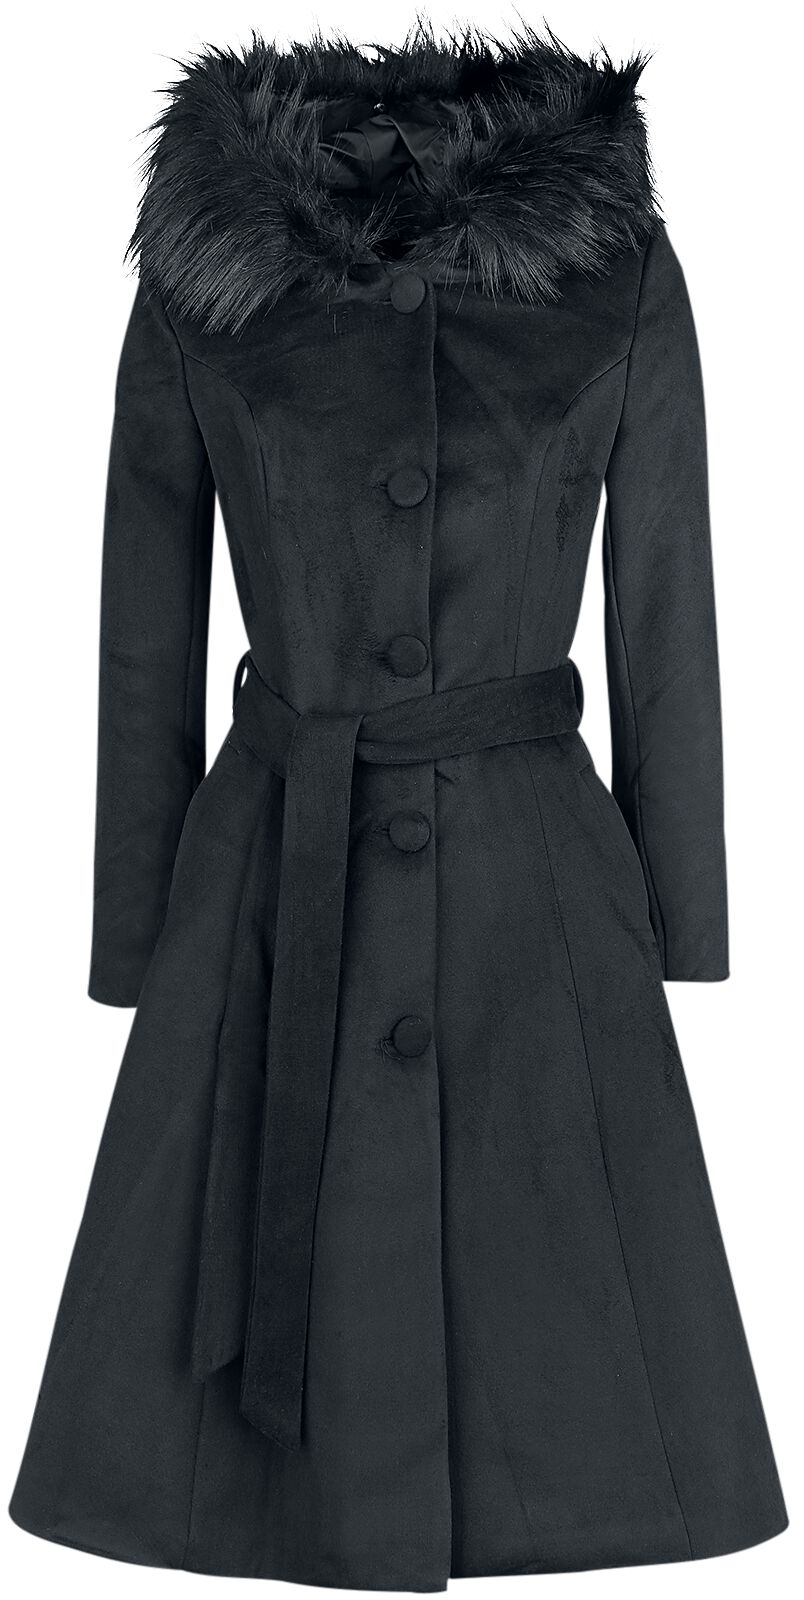 Jacken - H R London Ella Swing Coat Mantel schwarz  - Onlineshop EMP